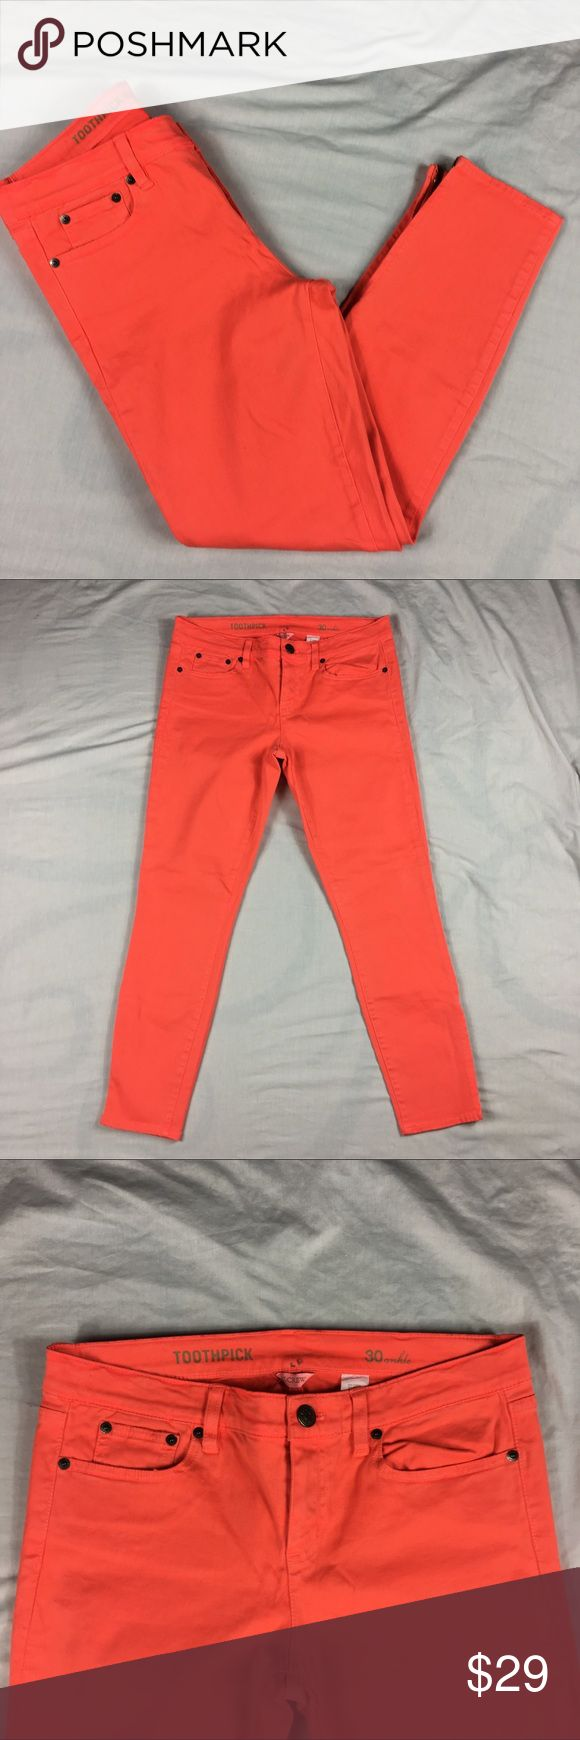 J Crew Toothpick Ankle zip 5 pocket orange jeans J Crew Toothpick Ankle zip 5 pocket orange jeans Women's Size:  30 Ankle Approx measurement: waist - 32 inches; rise - 9 inches; inseam - 27 inches Fabric content: 58% cotton, 39% modal, 3% spandex Machine washable New with tags - see pictures J. Crew Jeans Ankle & Cropped